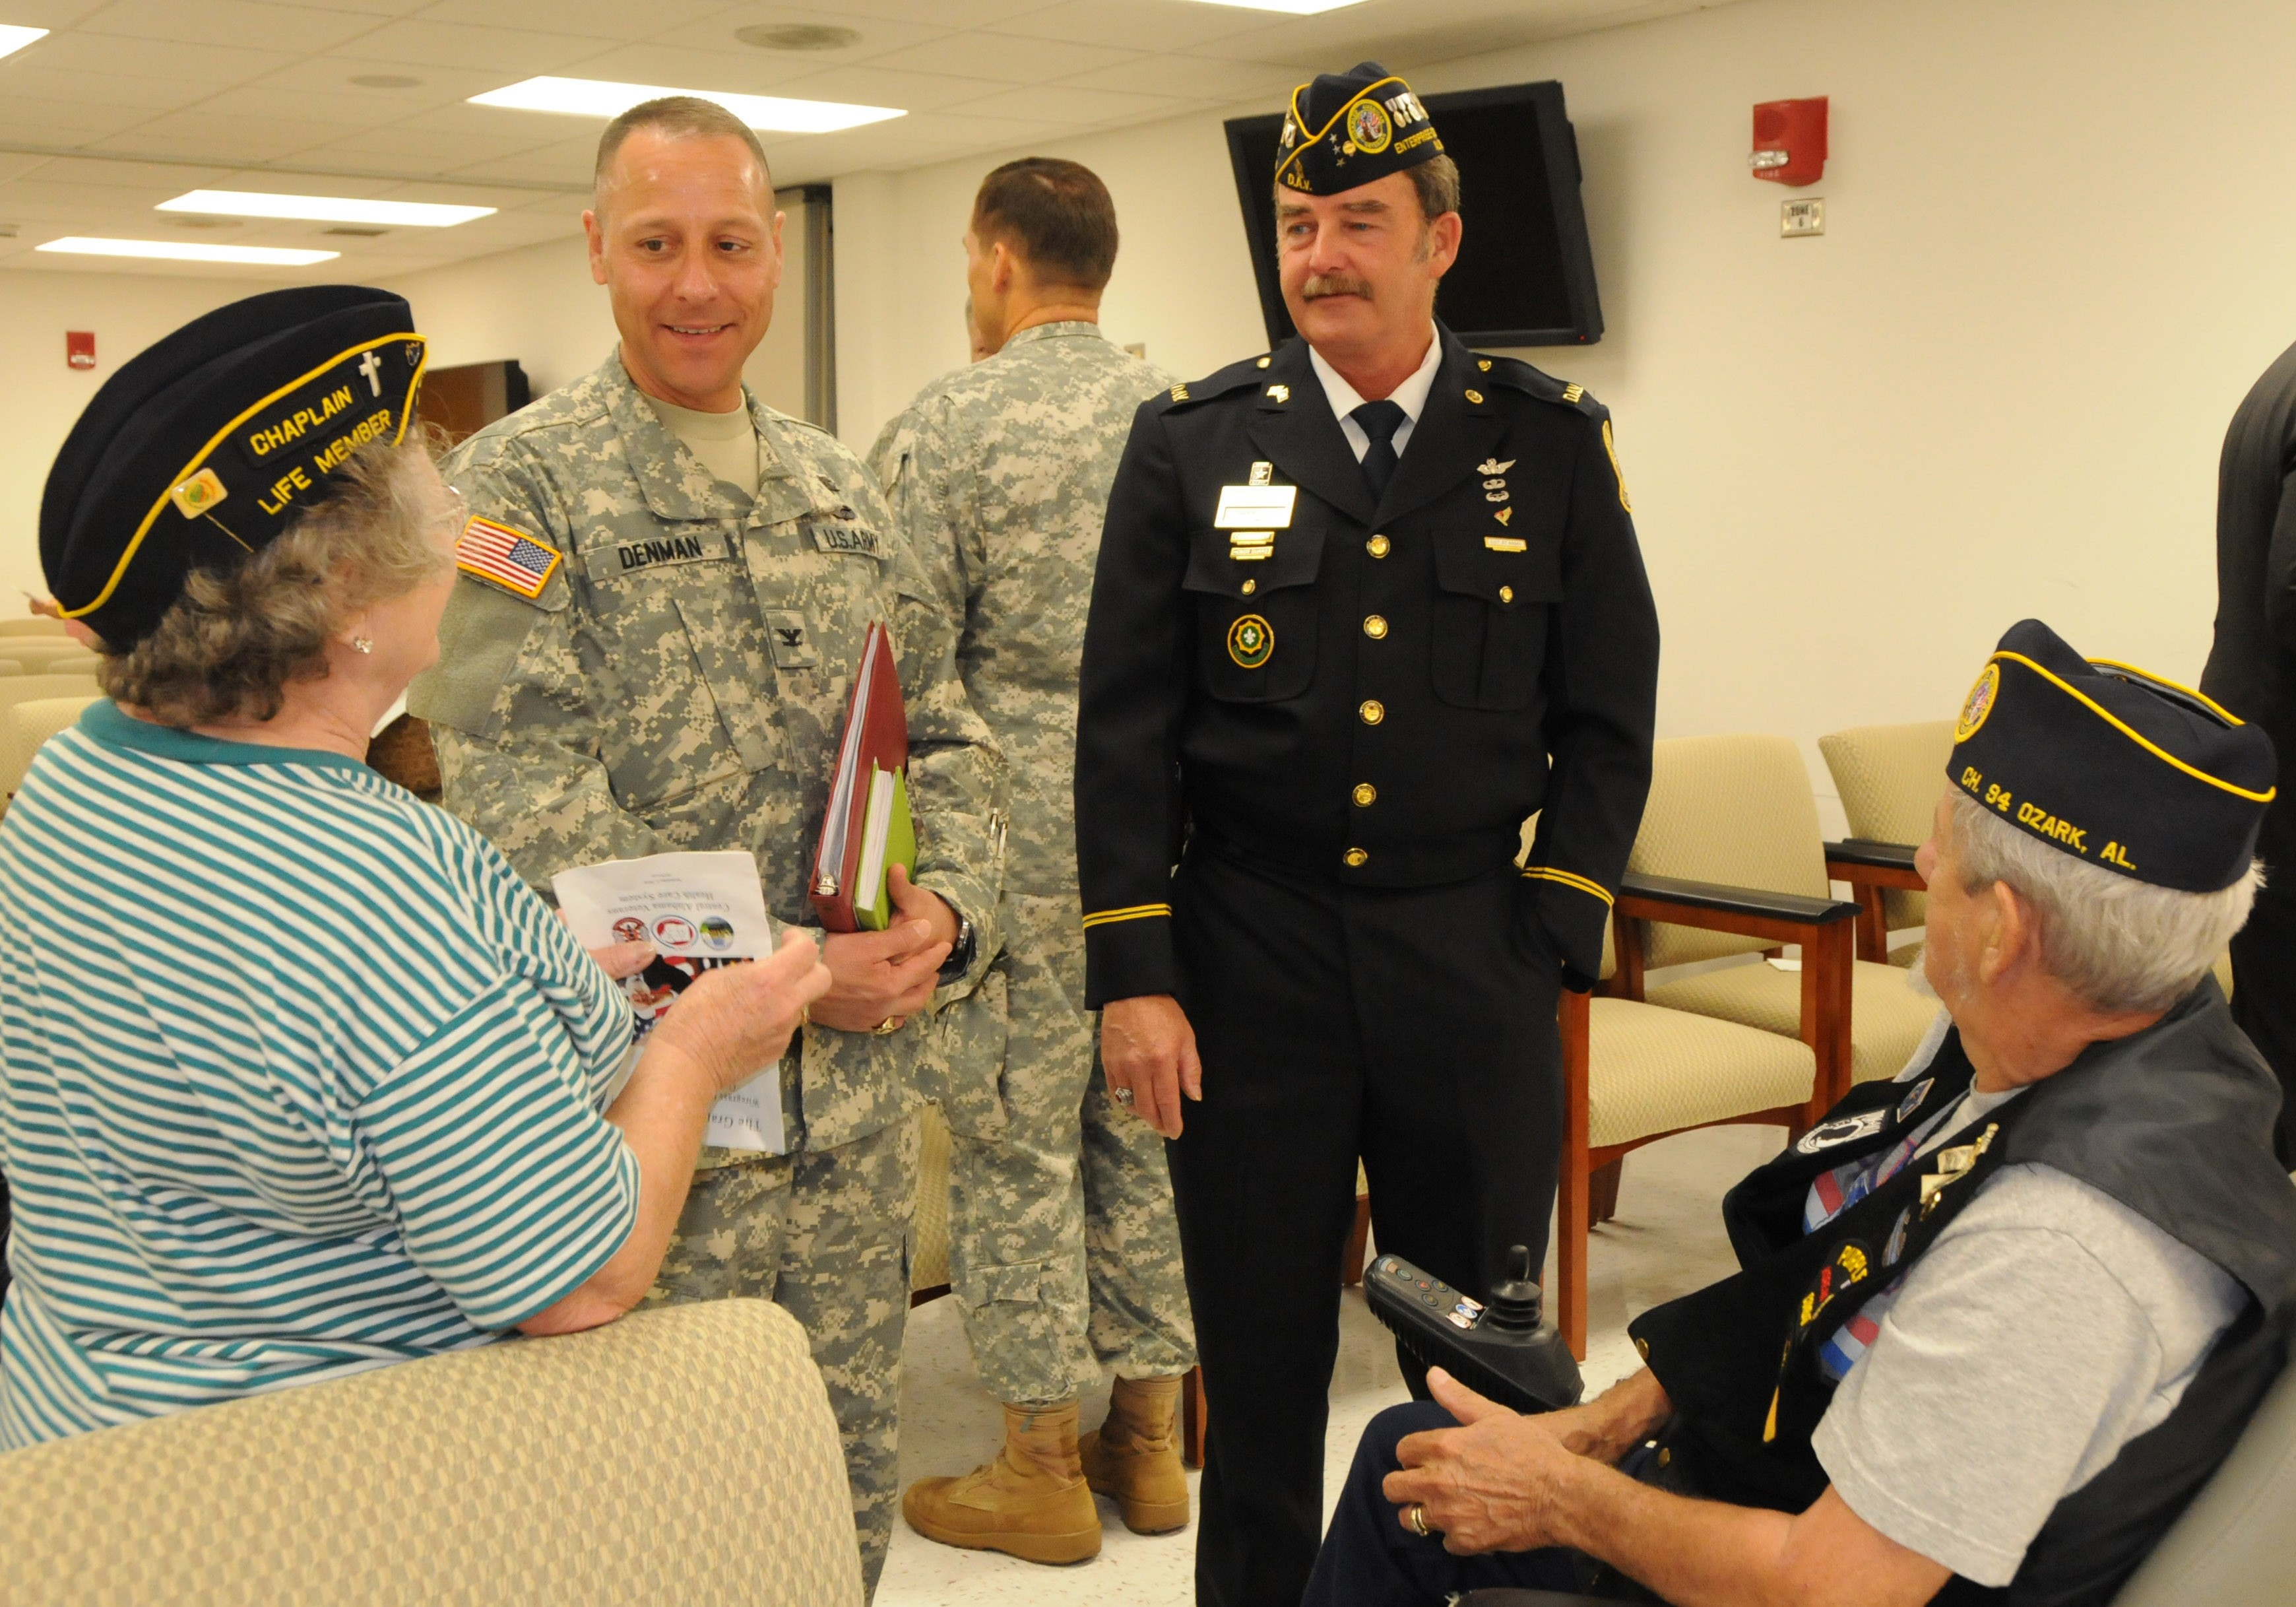 Full Service Va Clinic Opens On Fort Rucker Article The United